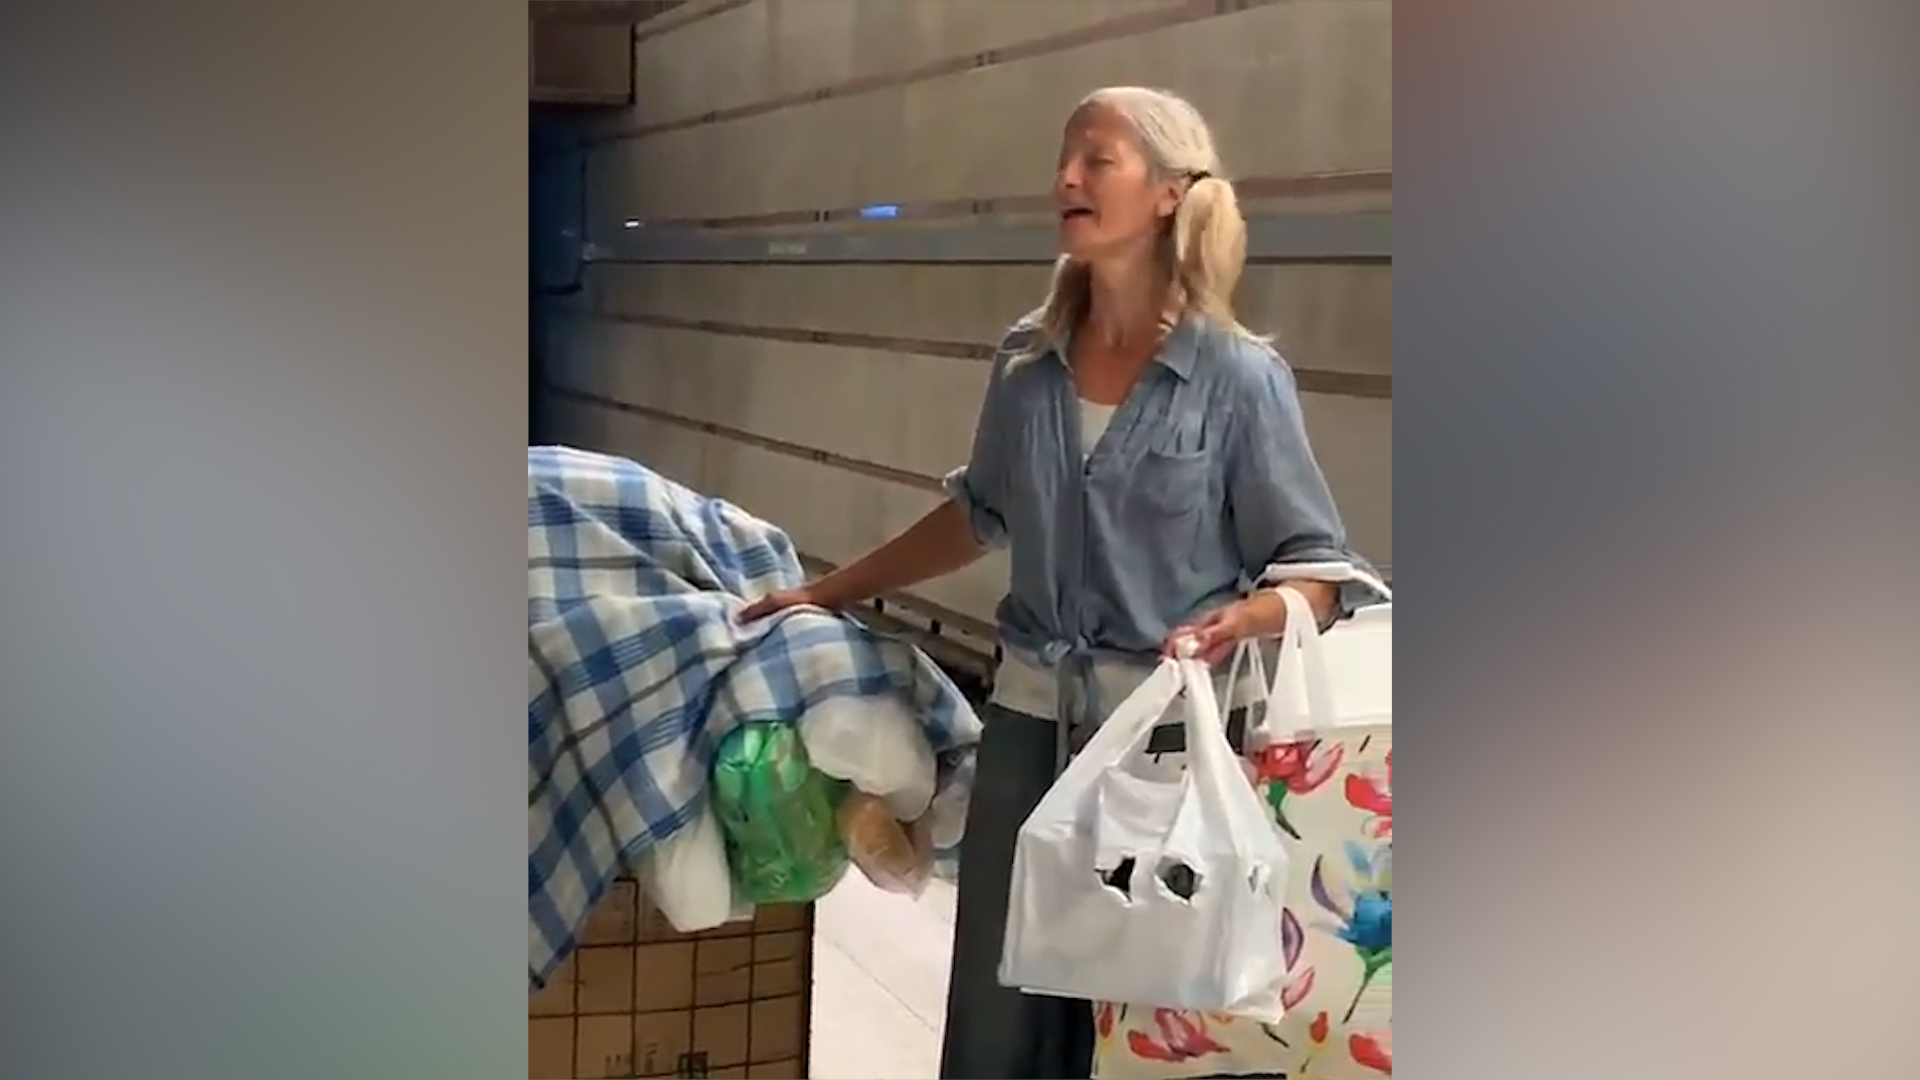 Homeless woman in LA goes viral with attractive singing voice